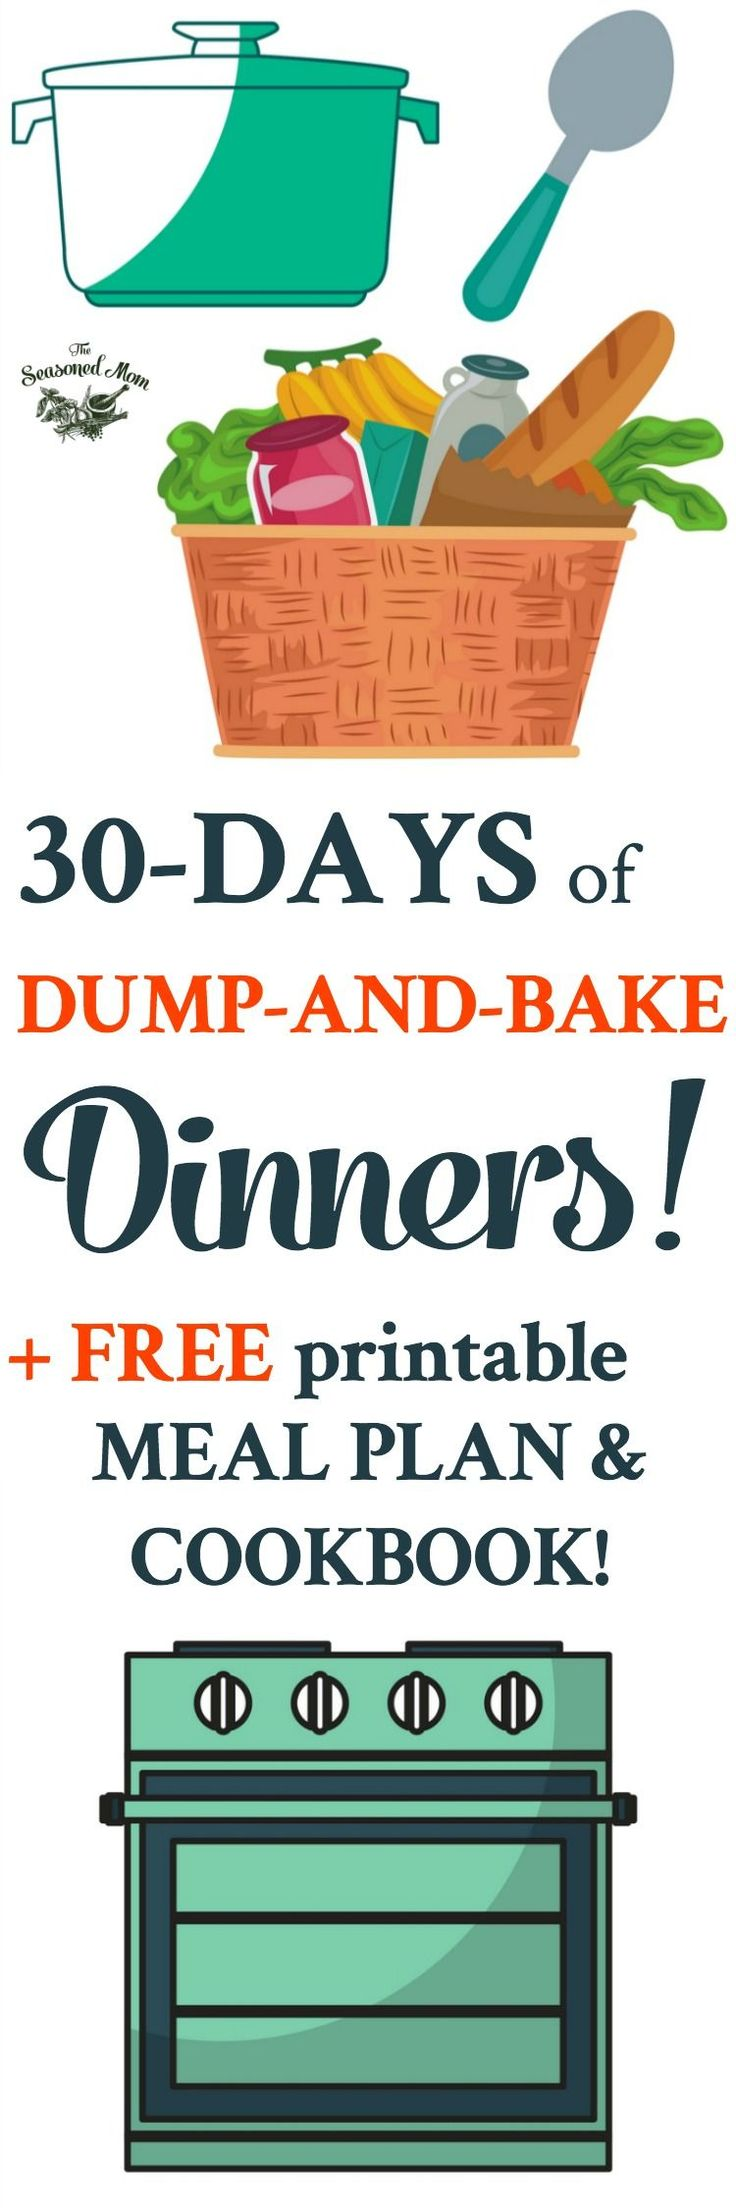 30 Days of Dump-and-Bake Dinners! Meal Planning | Meal Prep | Easy Dinner Recipes | Dinner Ideas | Casserole Recipes | Dump and Go Recipes | Chicken Breast Recipes | Pasta Recipes | 5 Ingredient of Less Dinner Recipes